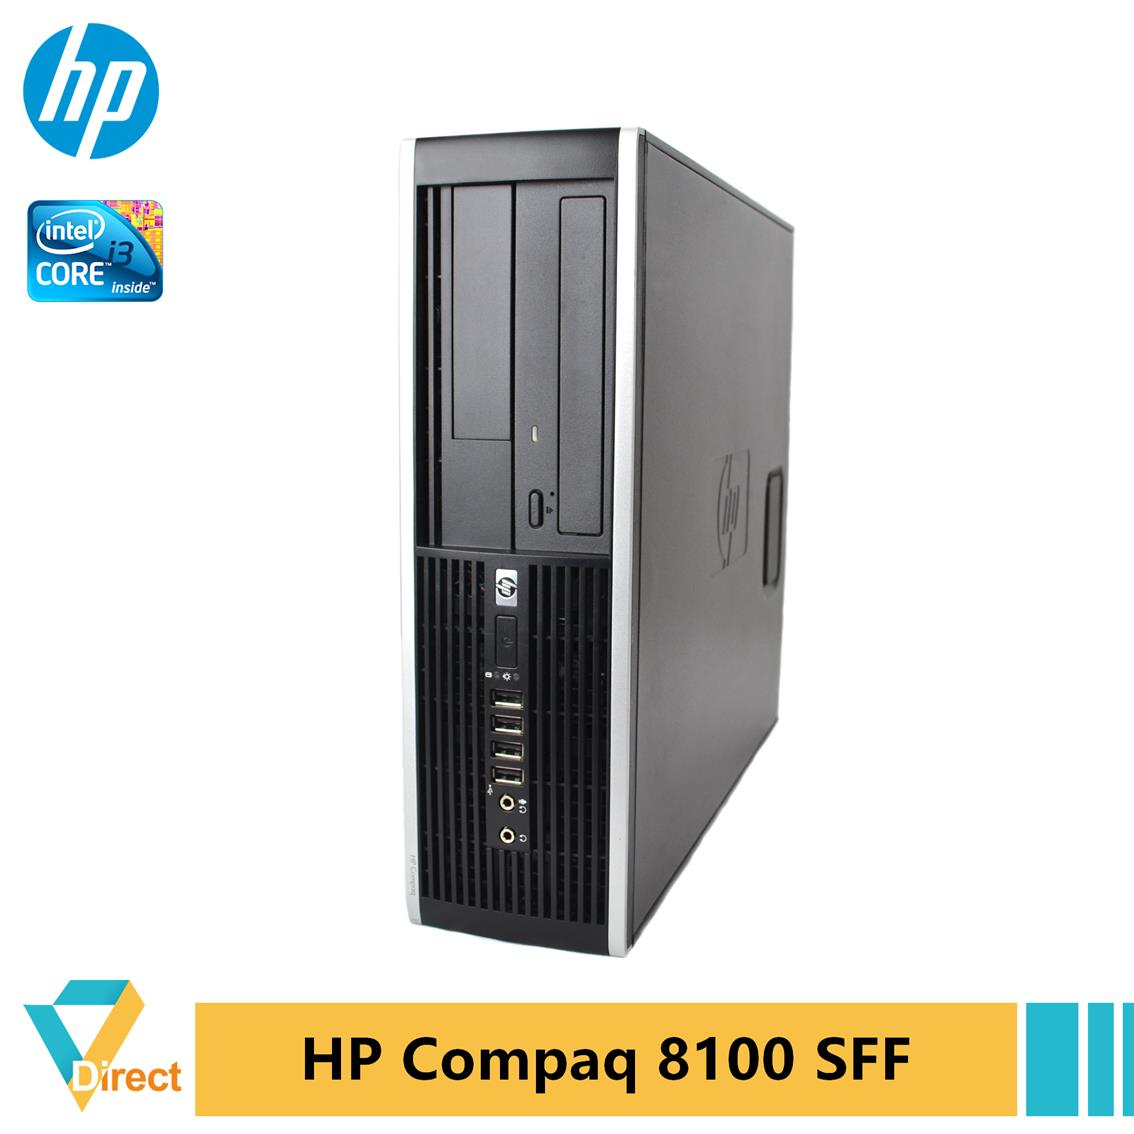 Murah 1st Gen i3 8GB 1TB SSD HP Compaq 8100 SFF desktop PC refurbished